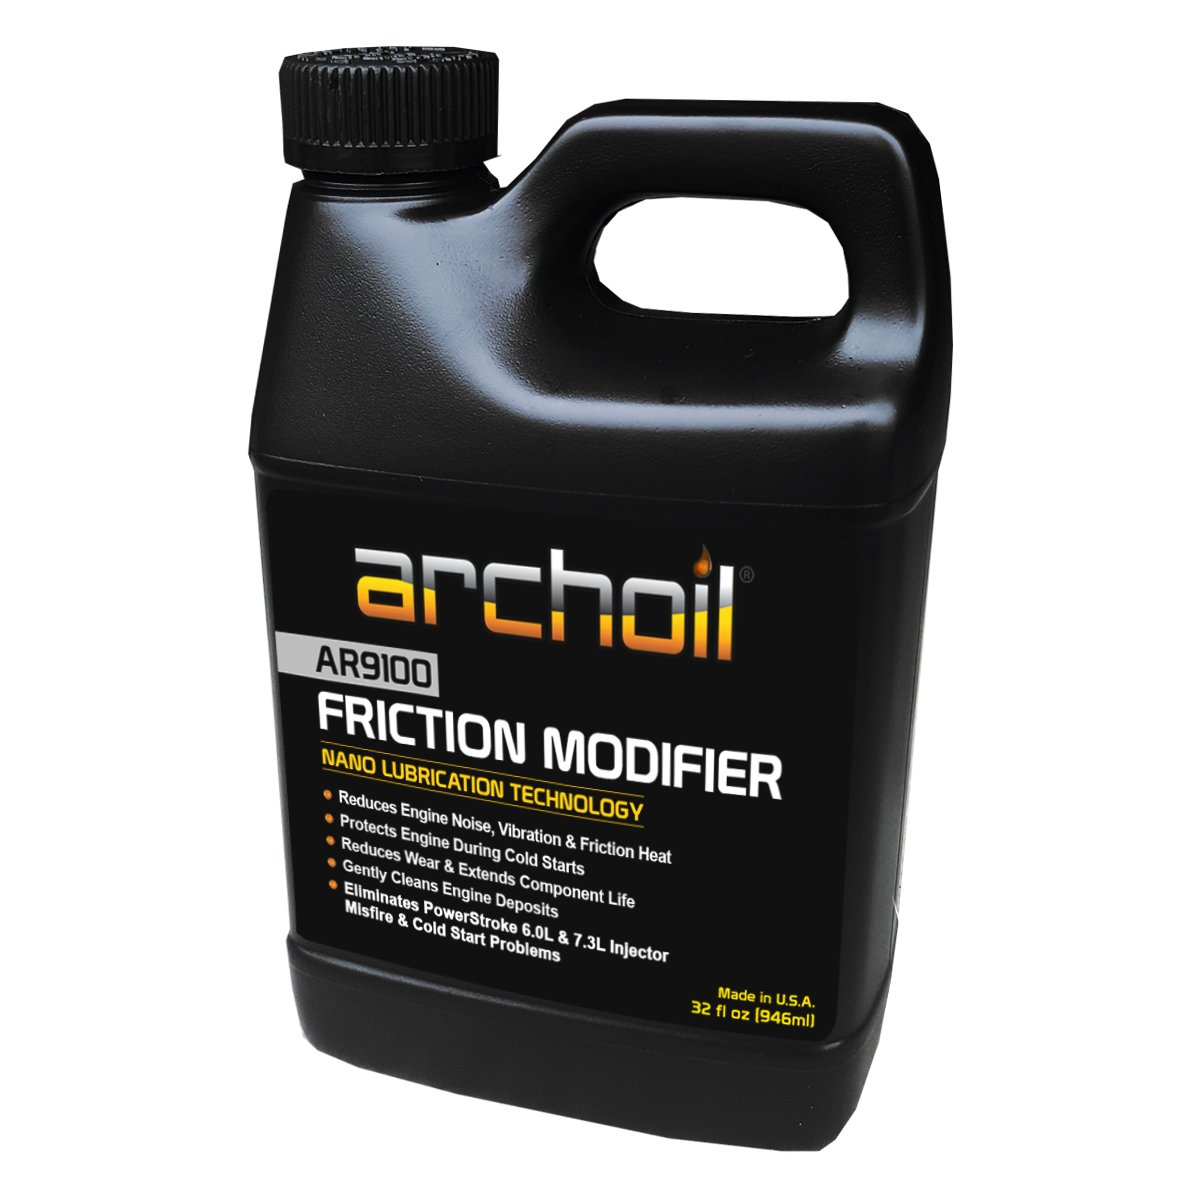 Ar9100 (32 Oz) Friction Modifier - Treats up to 32 Quarts of Engine Oil - Stiction Solution